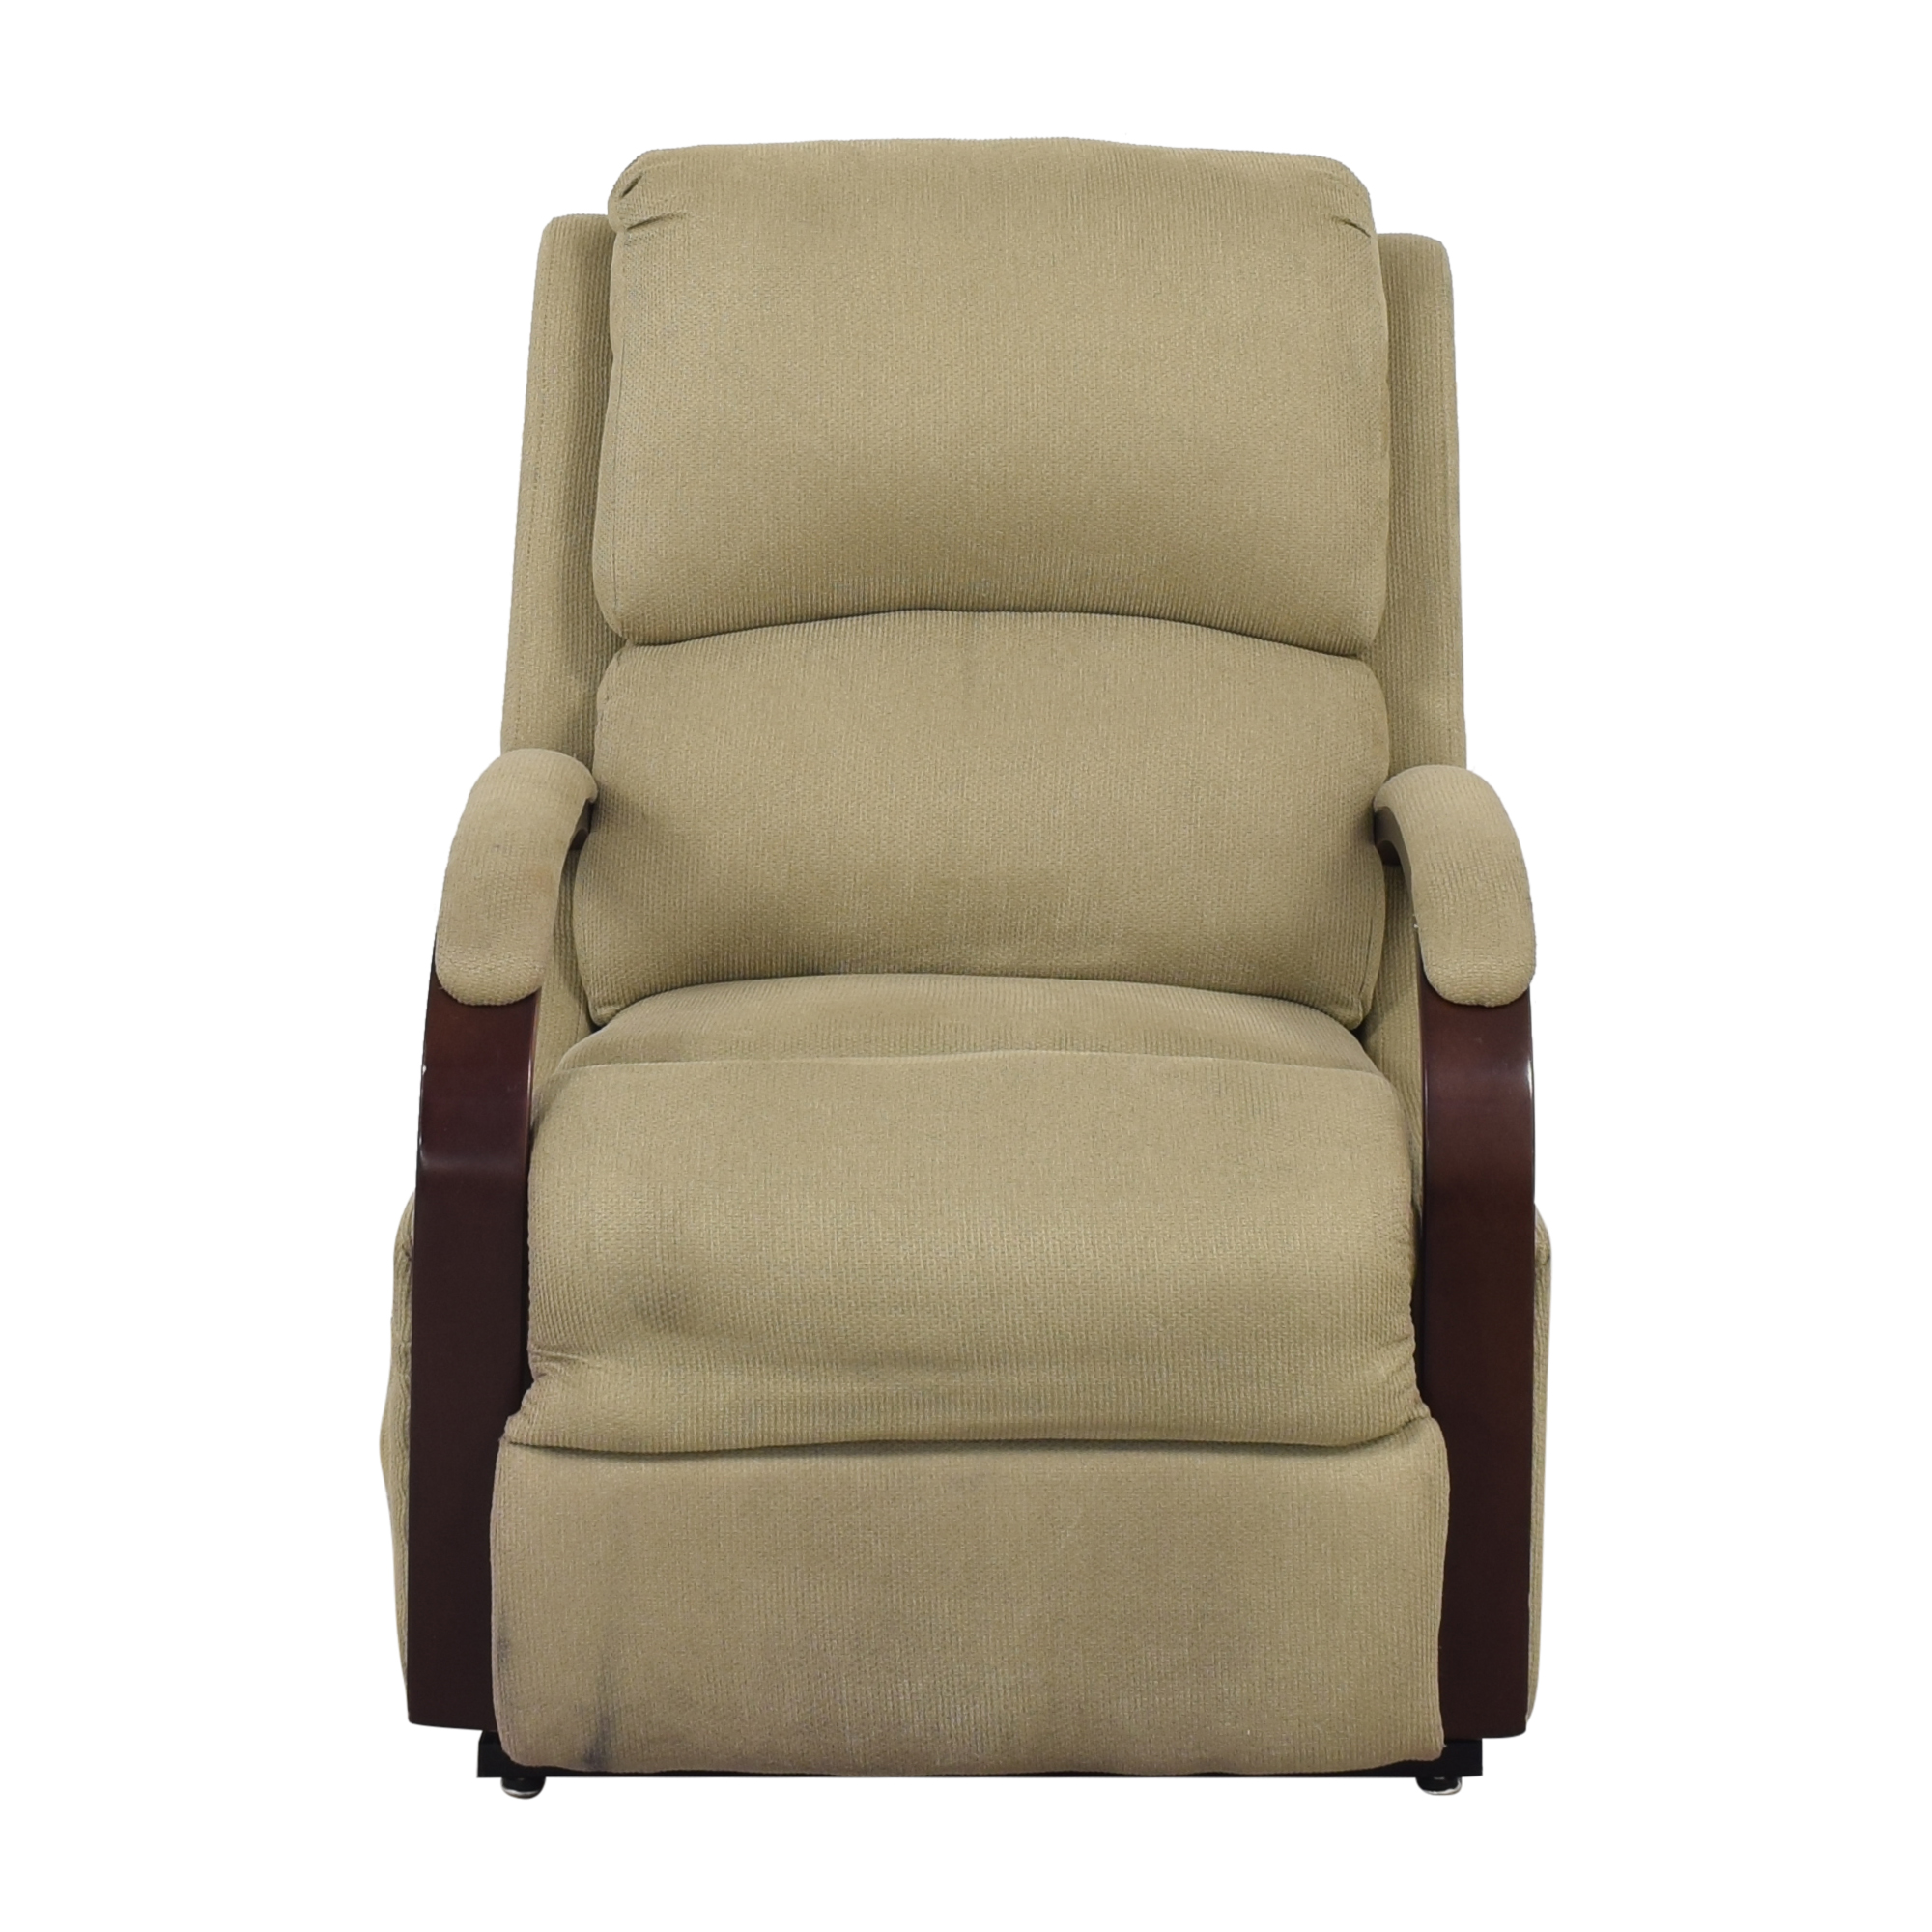 Macy's Macy's Power Lift Recliner Chair discount